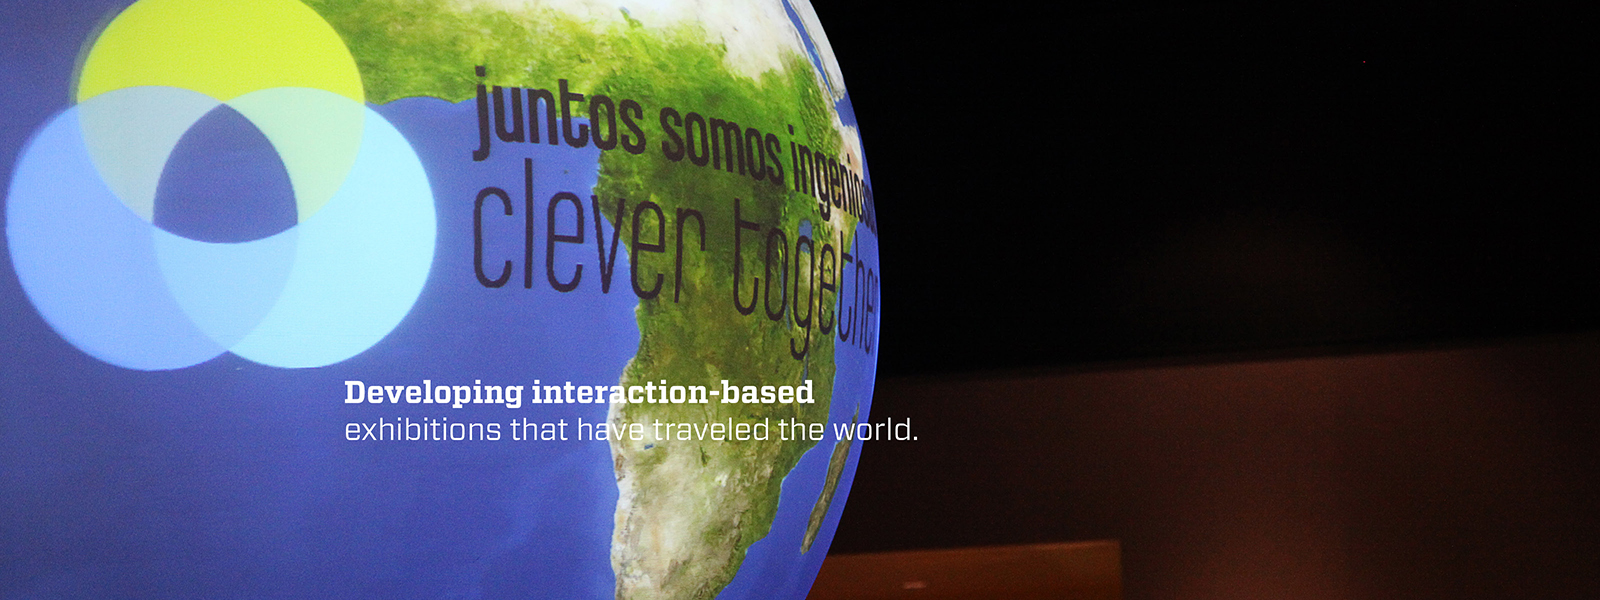 Developing interaction-based exhibitions that have traveled the world. Projection globe component pictured.